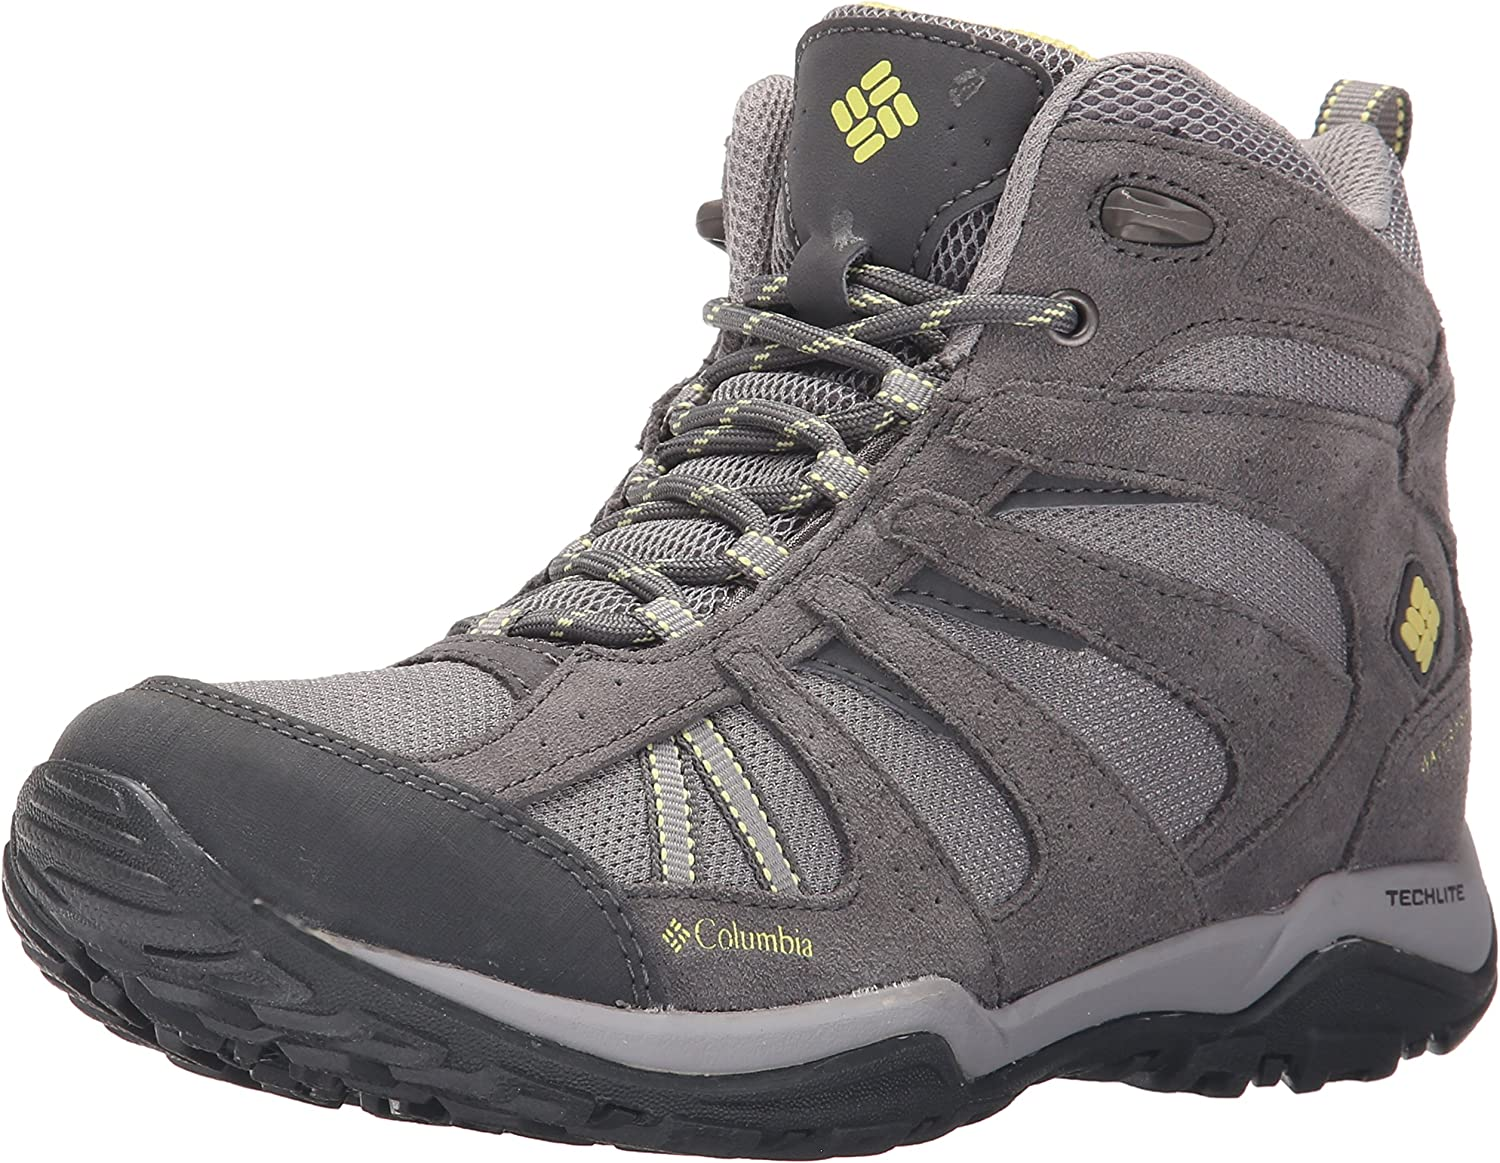 Columbia Women's Dakota Drifter Mid Waterproof Trail shoes